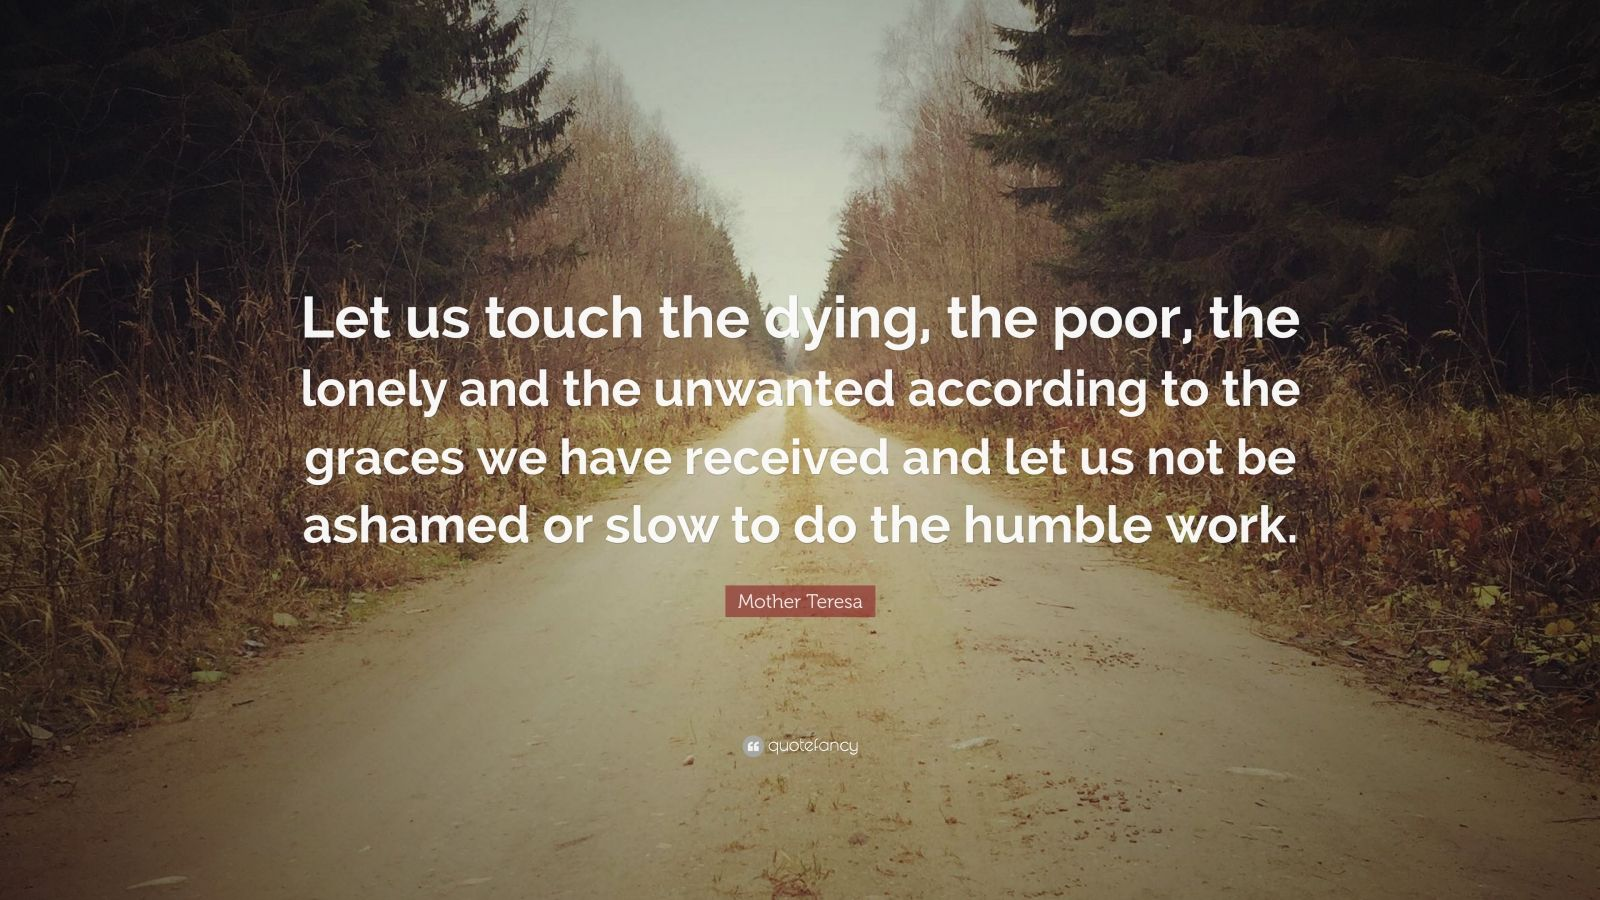 """Mother Teresa Quote: """"Let us touch the dying, the poor, the lonely and the unwanted according to the graces we have received and let us not be ashamed or slow to do the humble work."""""""